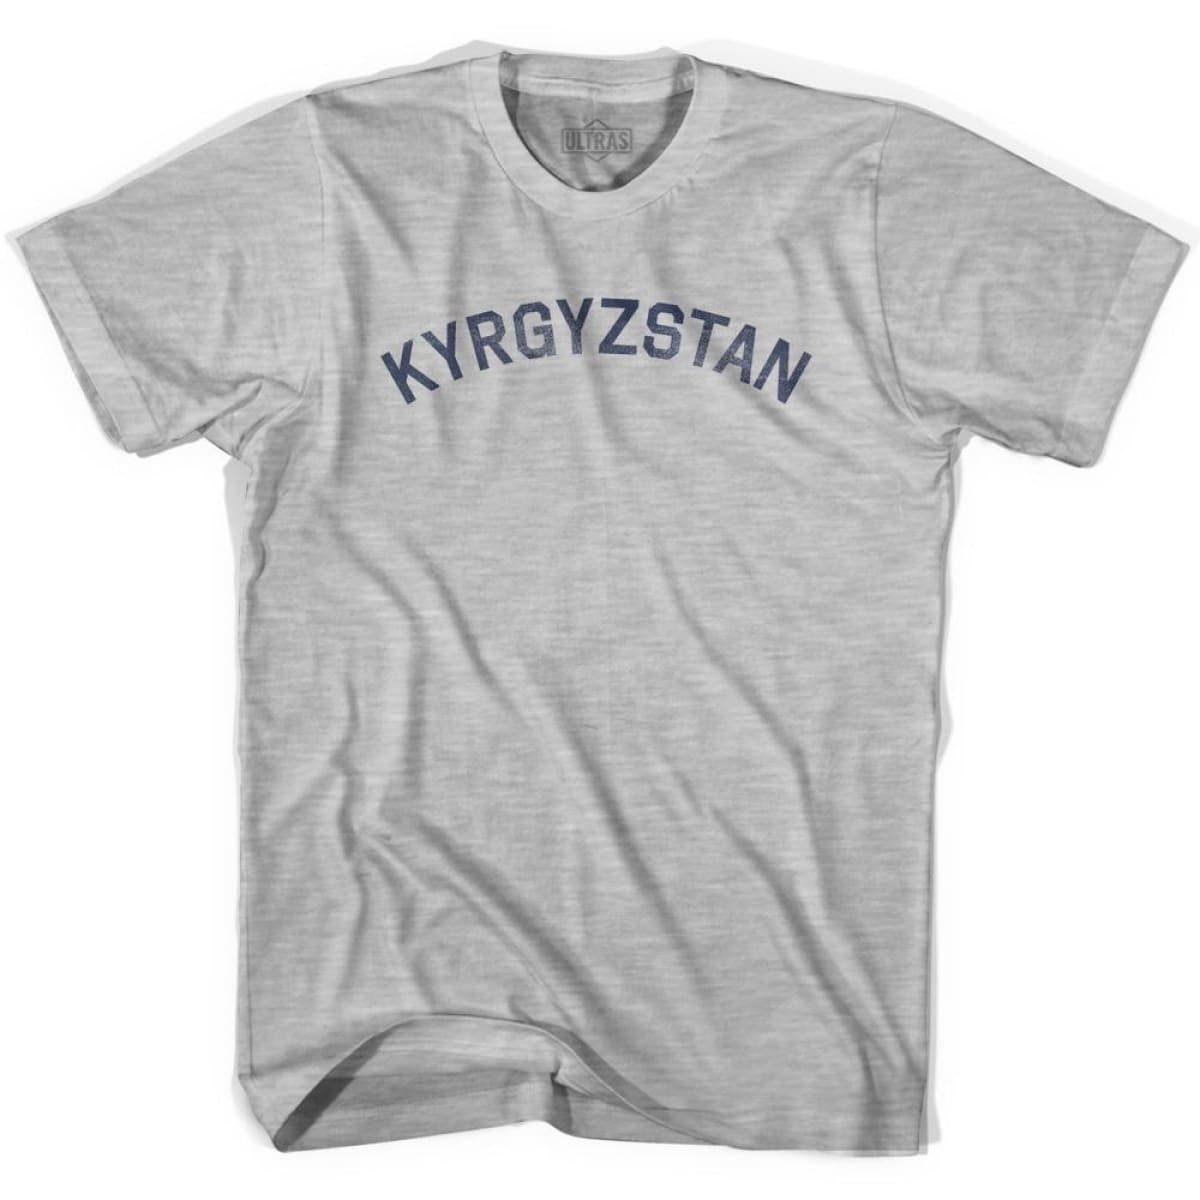 Kyrgyzstan Vintage City Adult Cotton T-shirt - Grey Heather / Adult Small - Asian Vintage Country